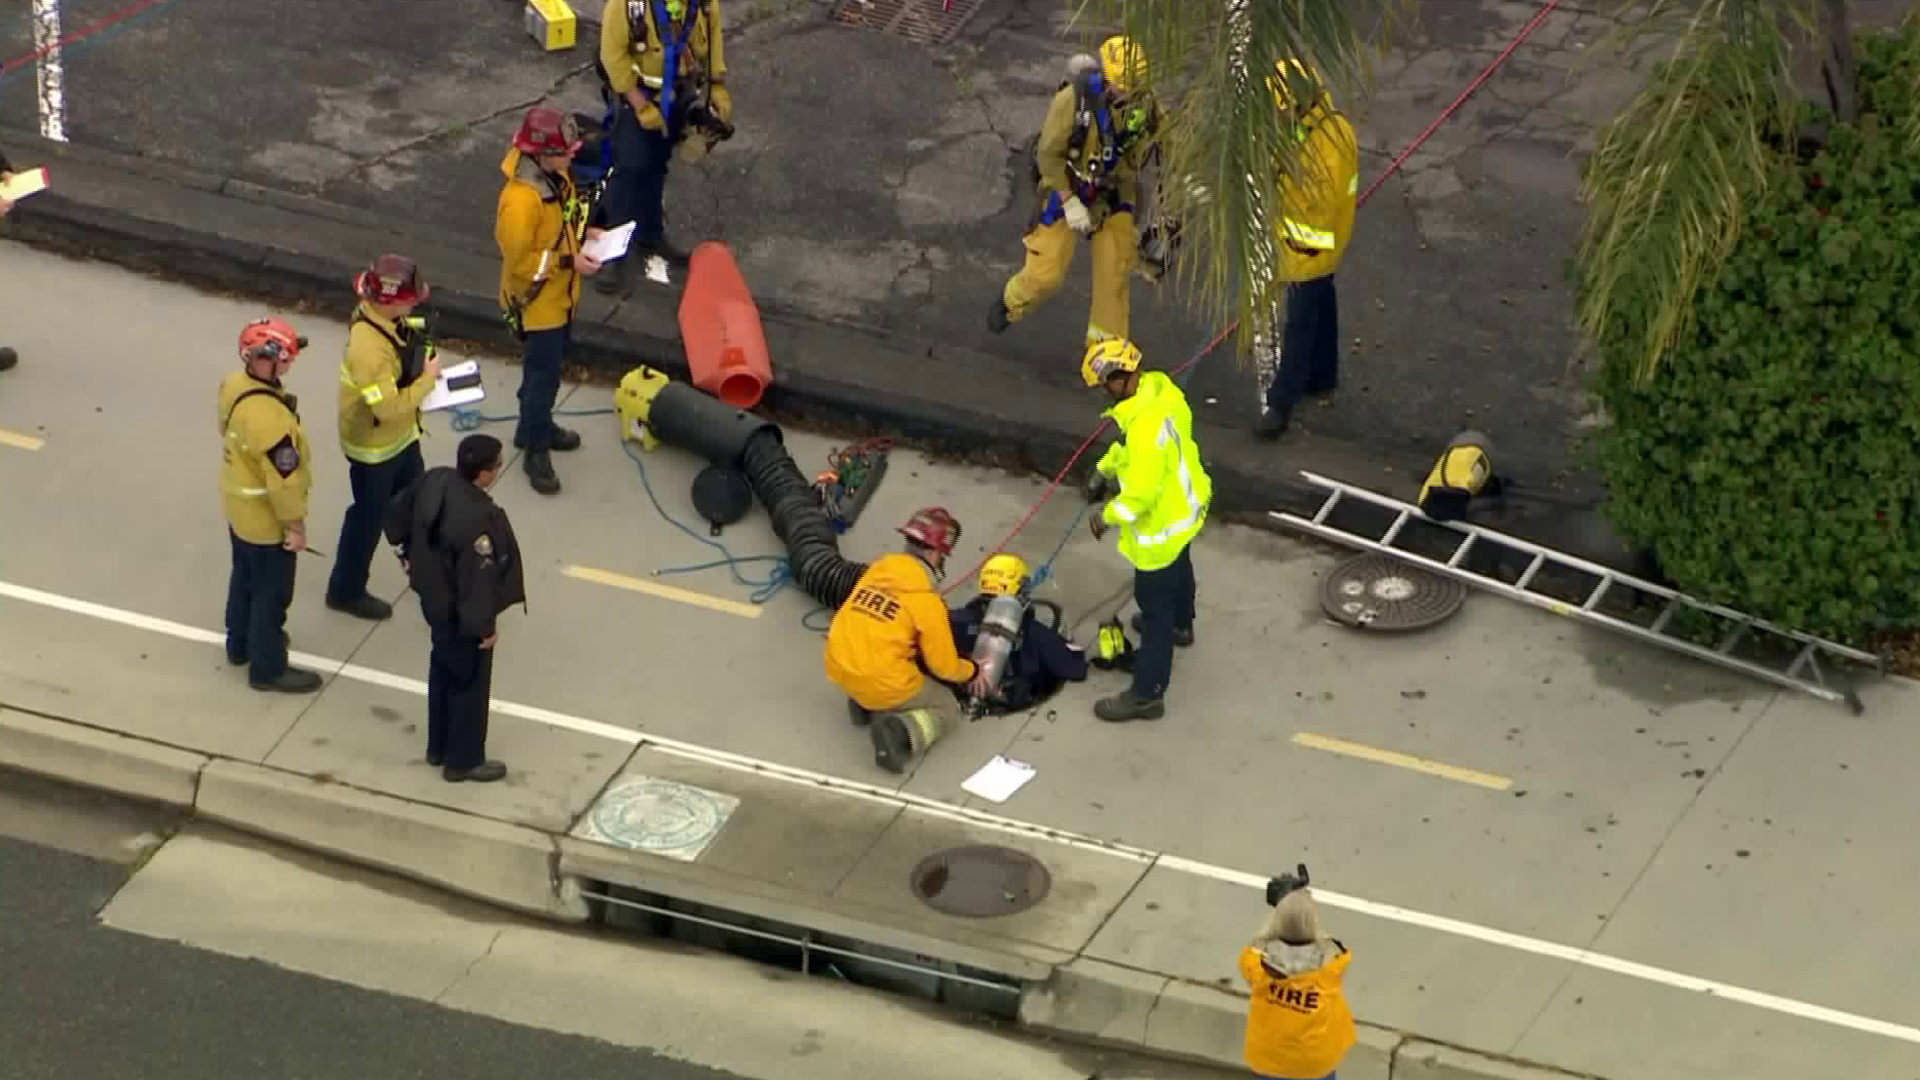 A rescuer goes inside the storm drain were a person is trapped near a Lakewood-area golf course on April 6, 2020. (KTLA)